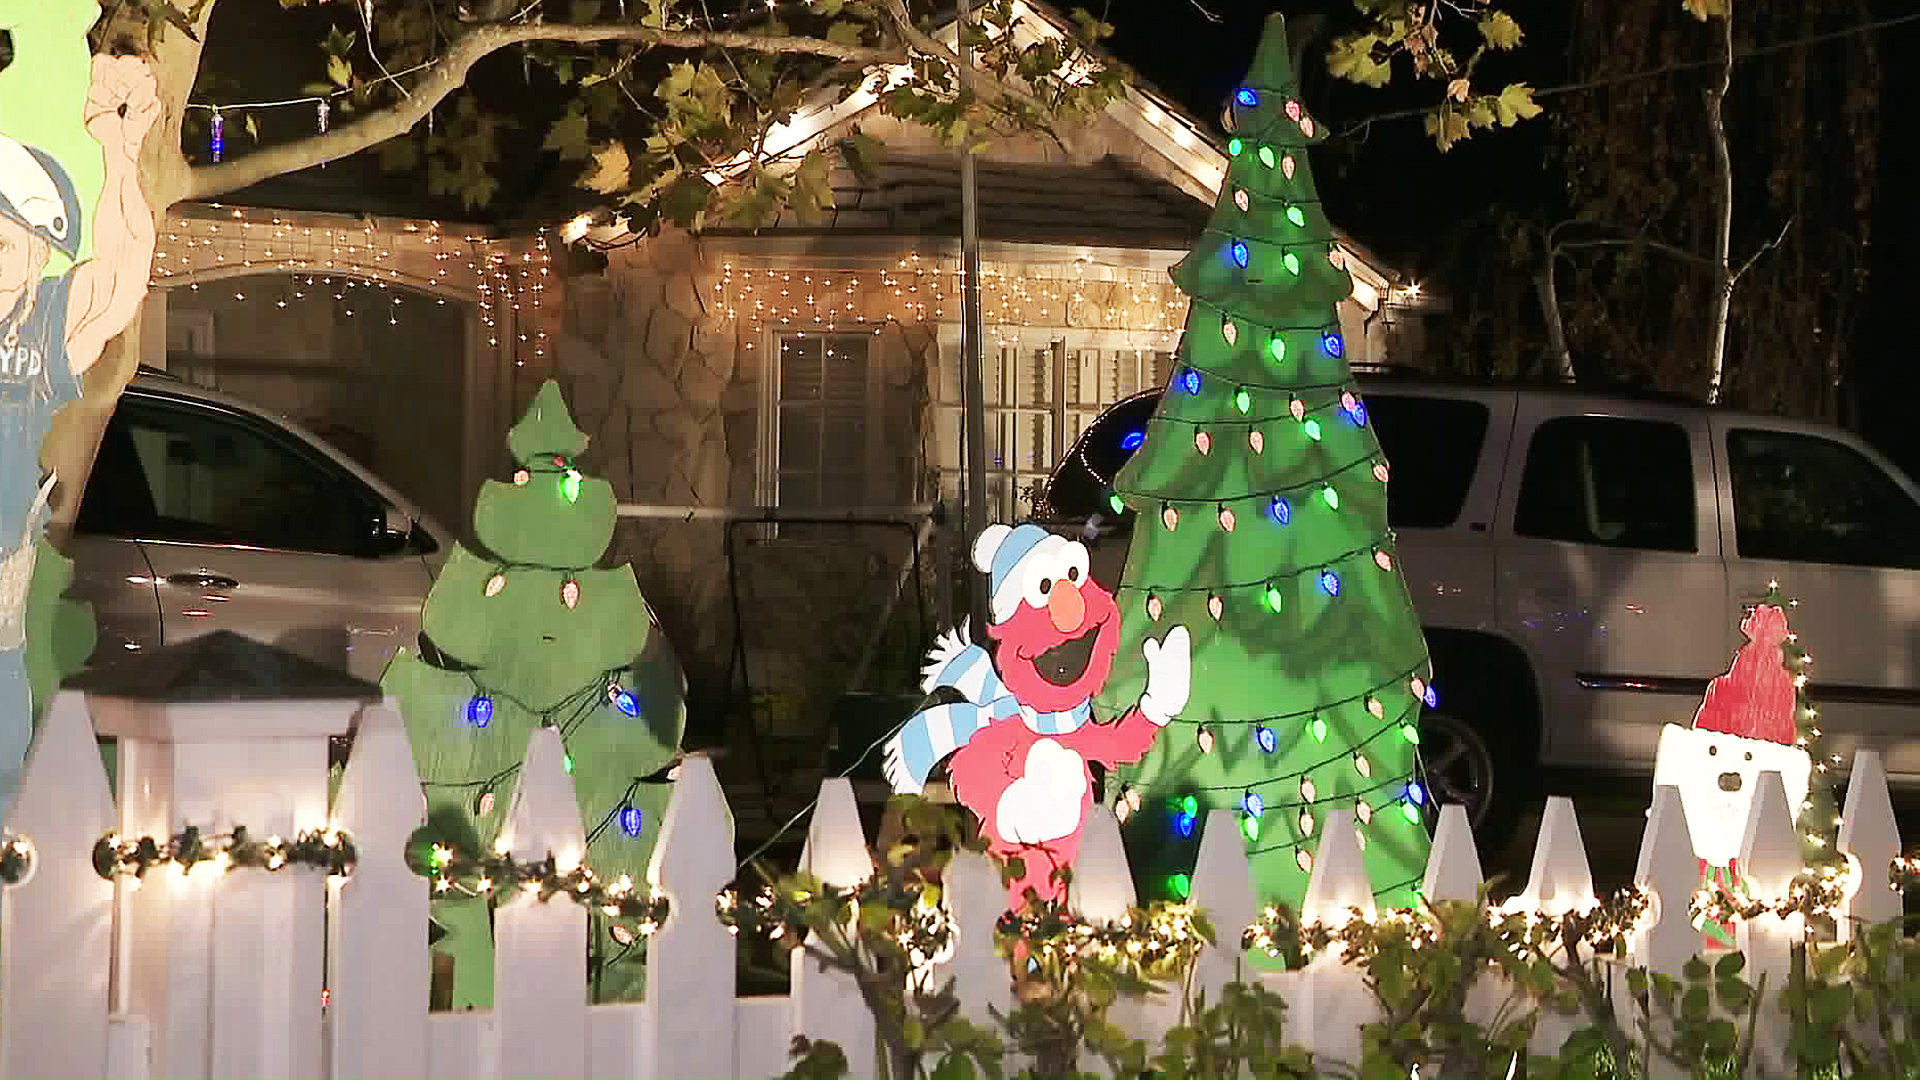 Christmas decorations are seen on Candy Cane Lane on Nov. 28, 2017. (Credit: KTLA)